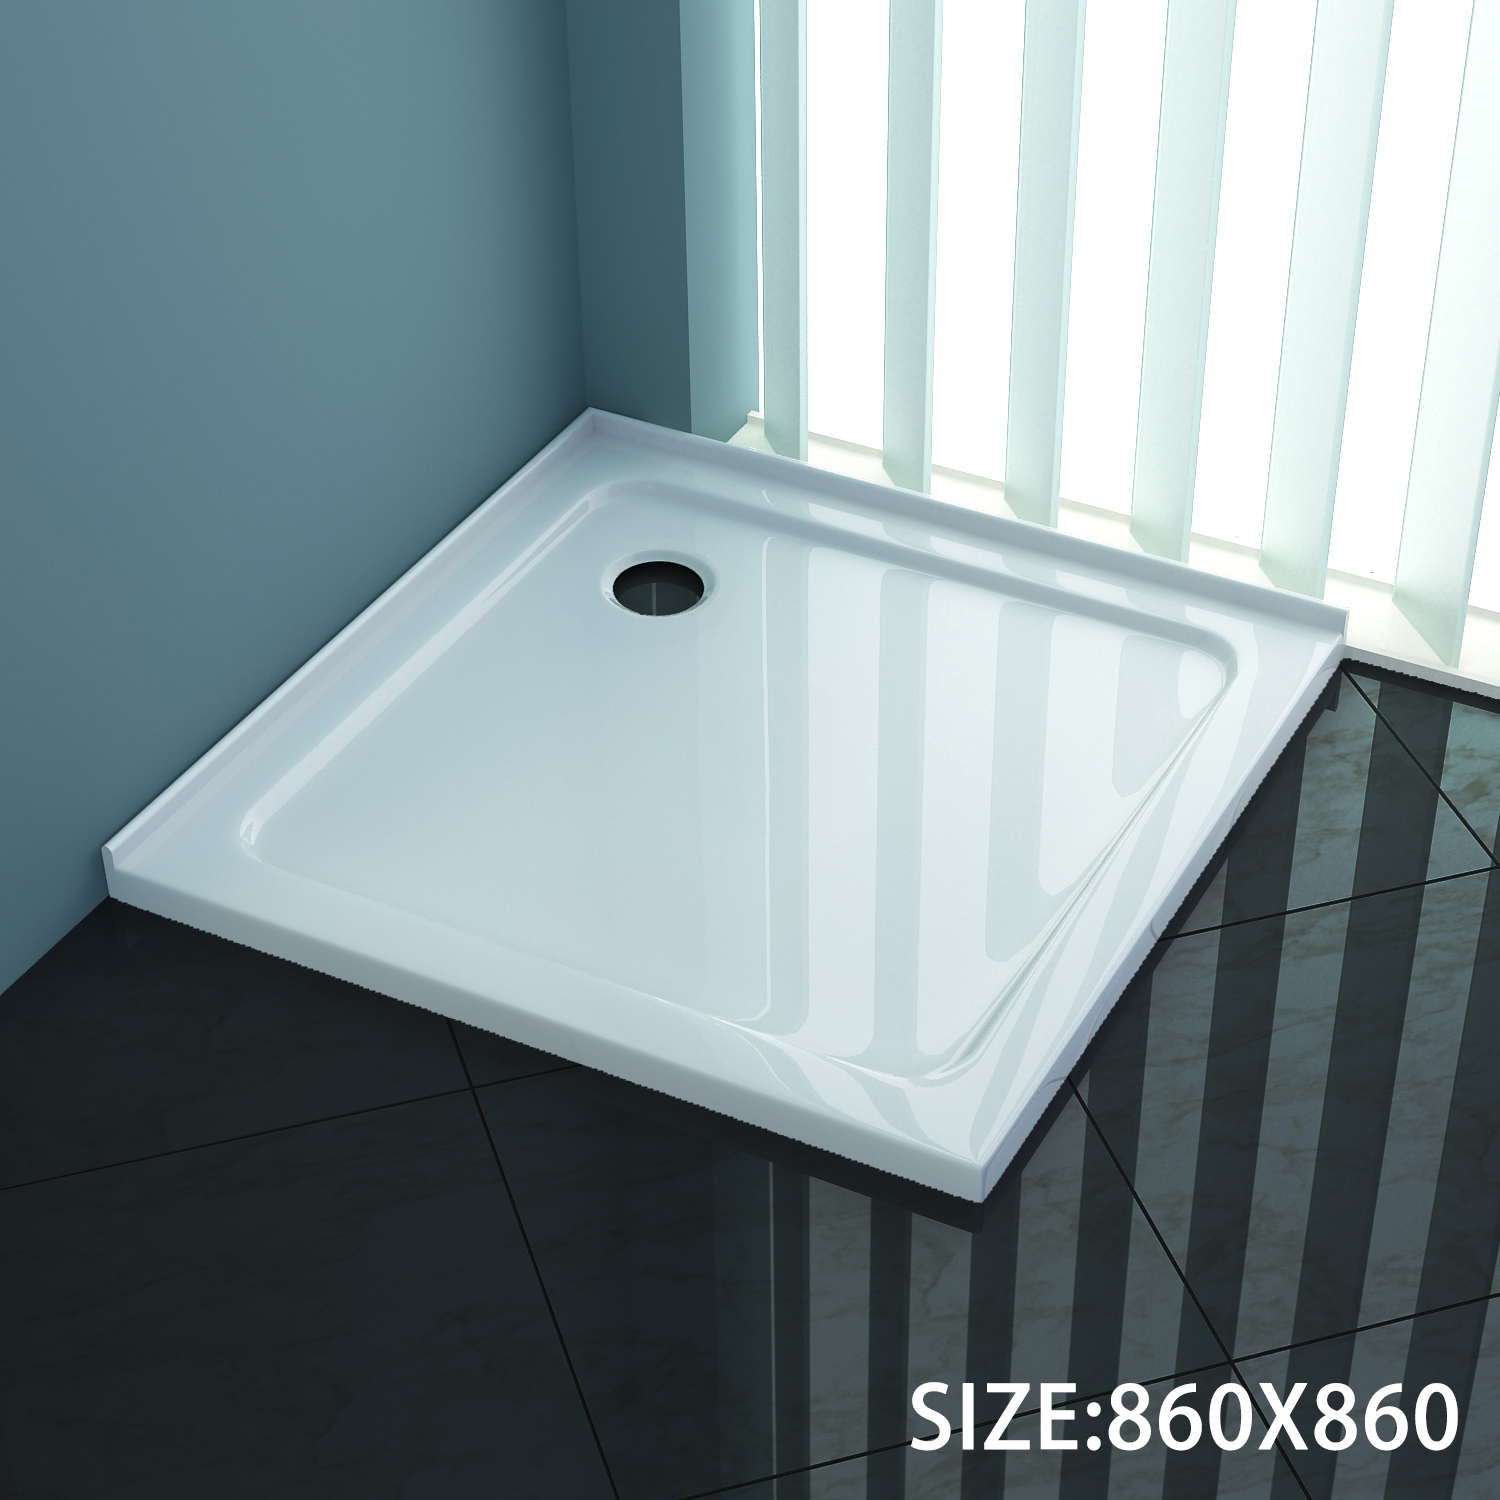 865x865x50mm Square Durable Acrylic Fiberglass Shower Base Australia ...